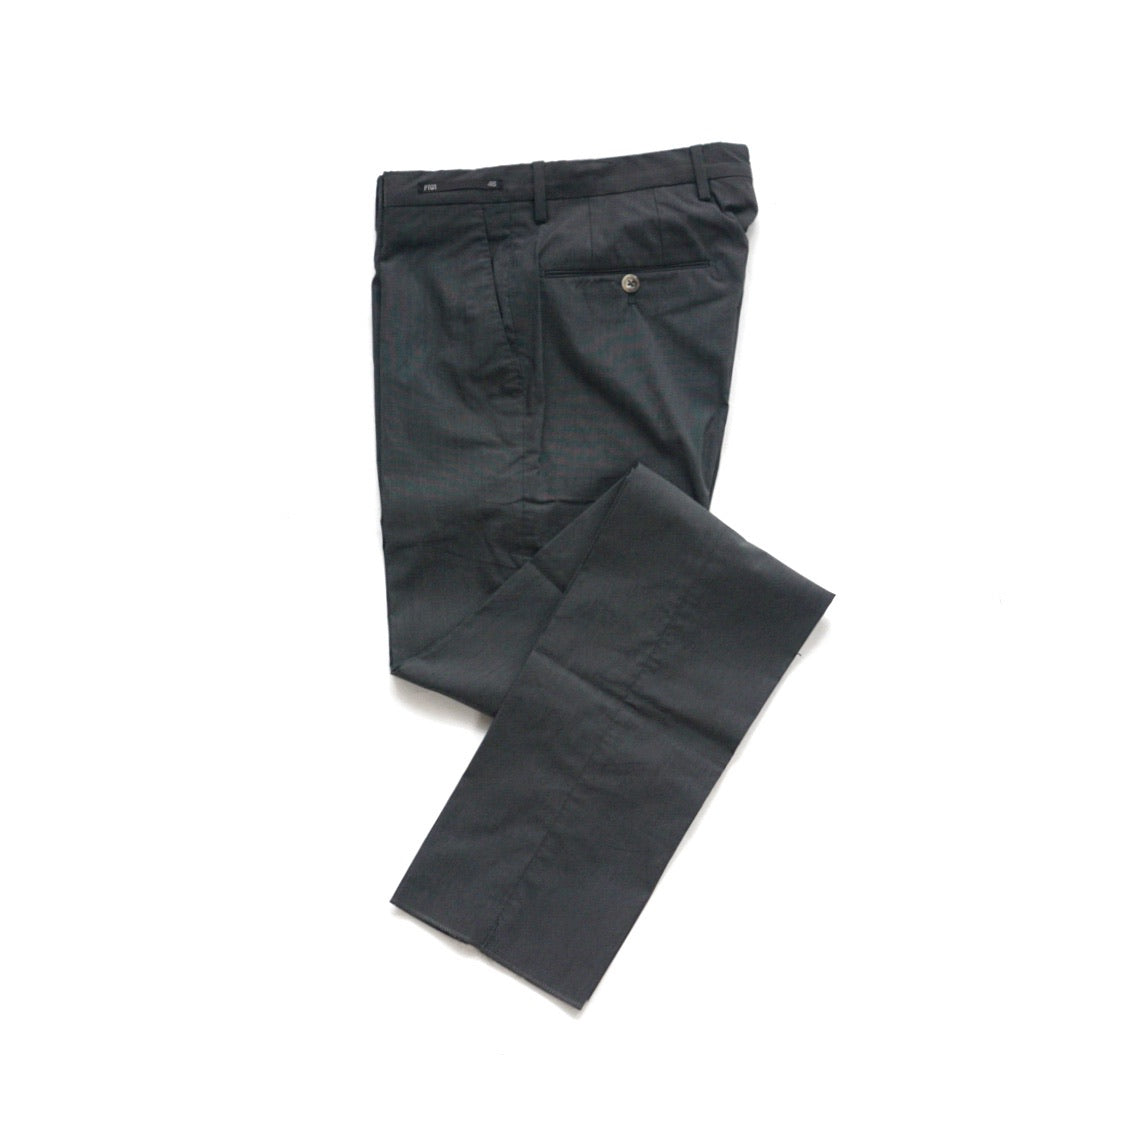 PT01 Grey Travel Pants; 37-0039